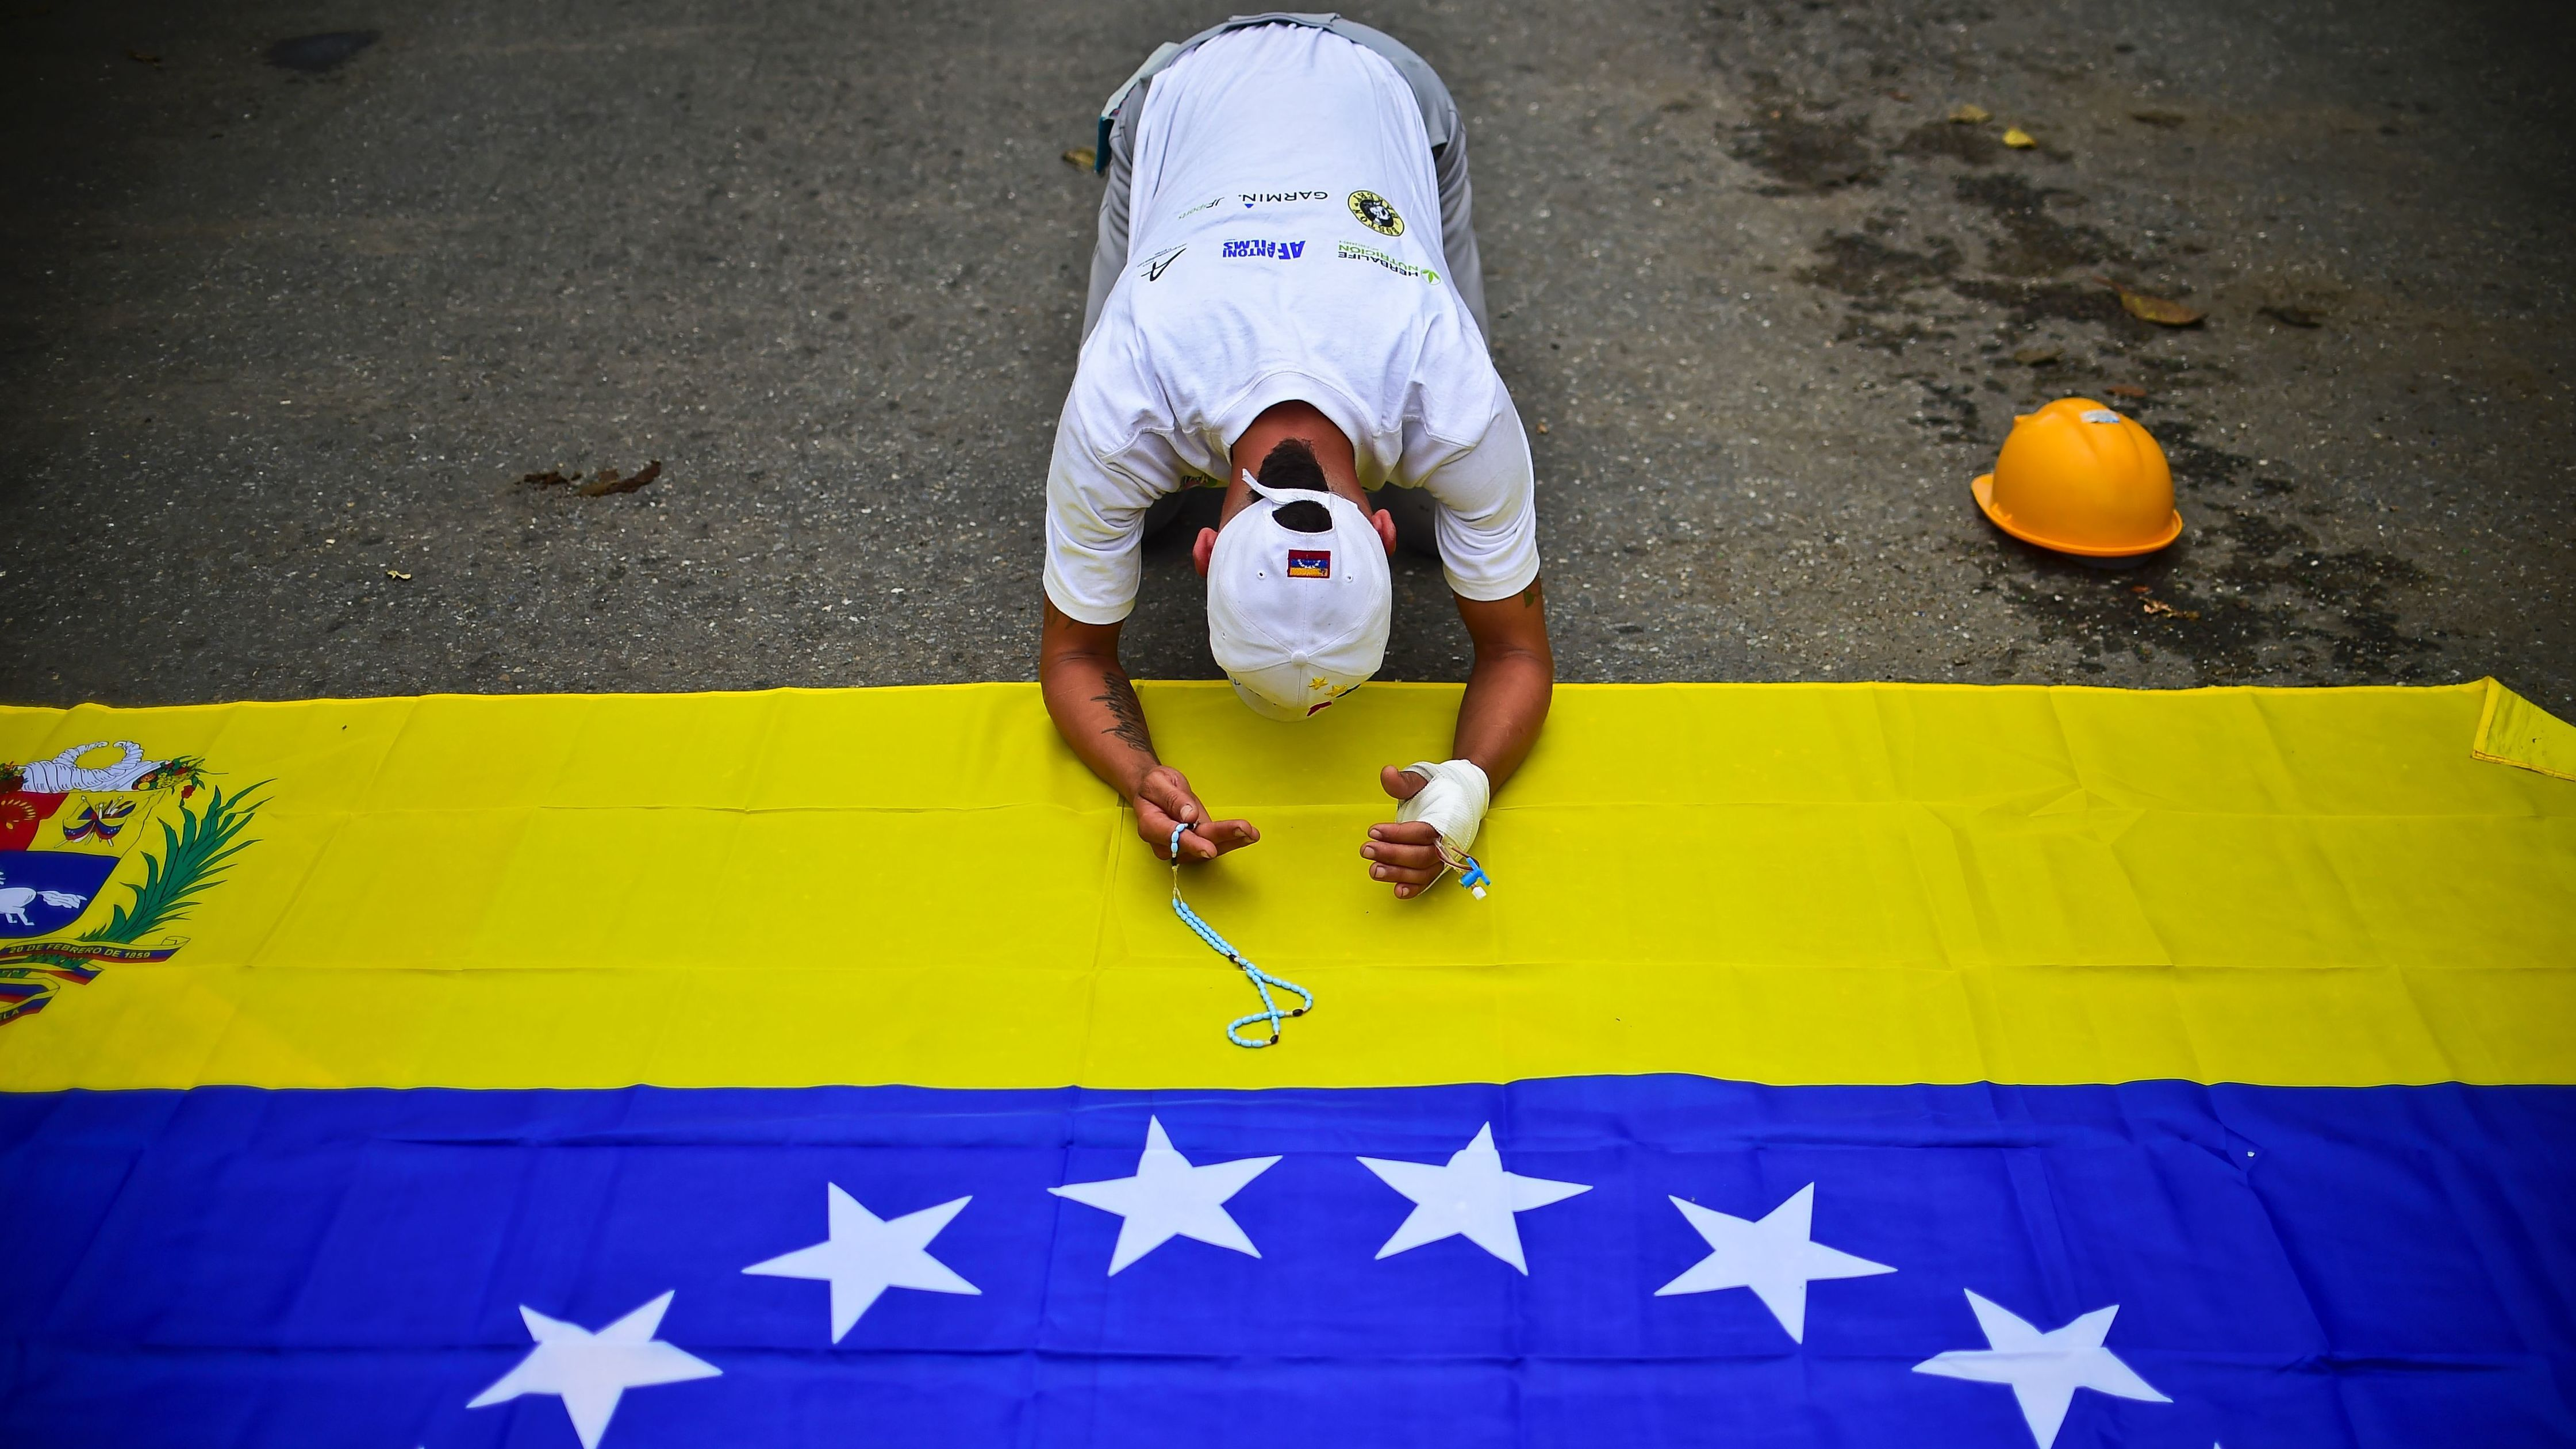 An opposition activist bows before the Venezuelan flag during a protest in Caracas on Monday.